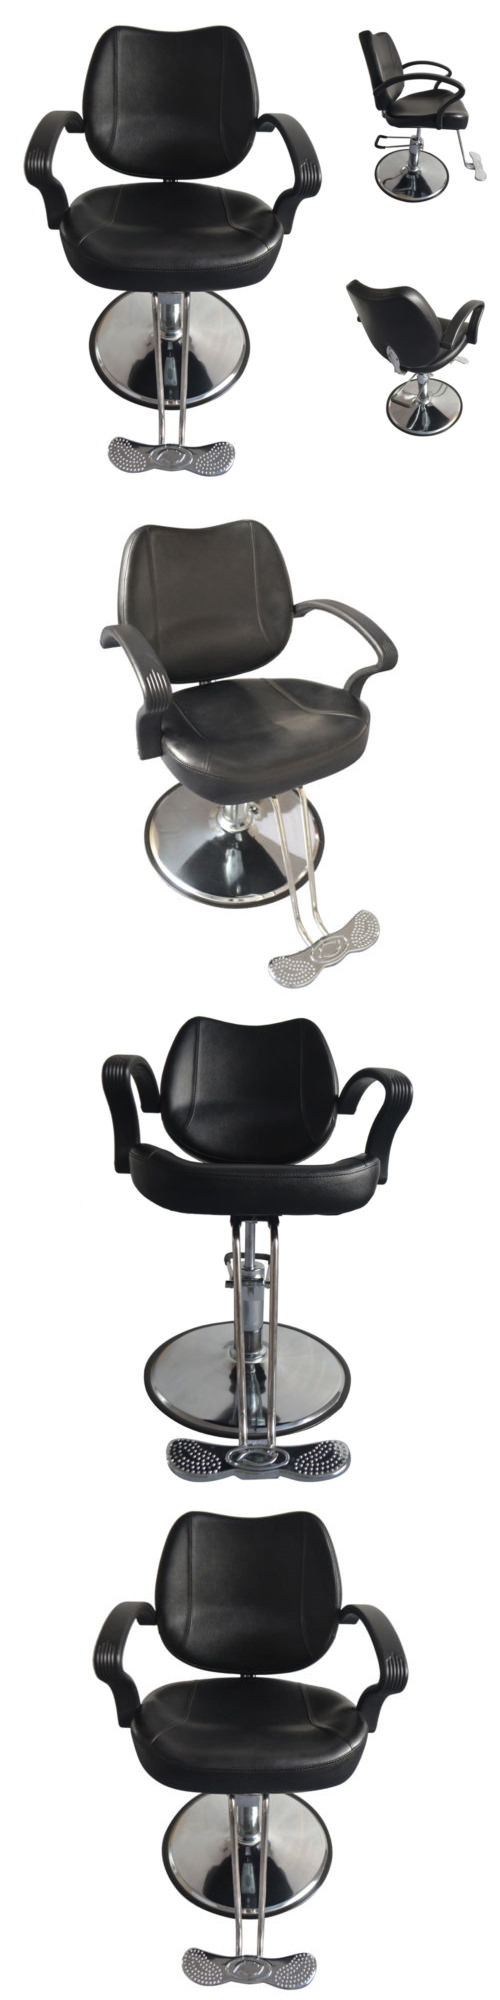 Barber chairs and stations - Stylist Stations And Furniture New Hydraulic Barber Chair Hair Cutting Stylist Stations Salon Beauty Equipment